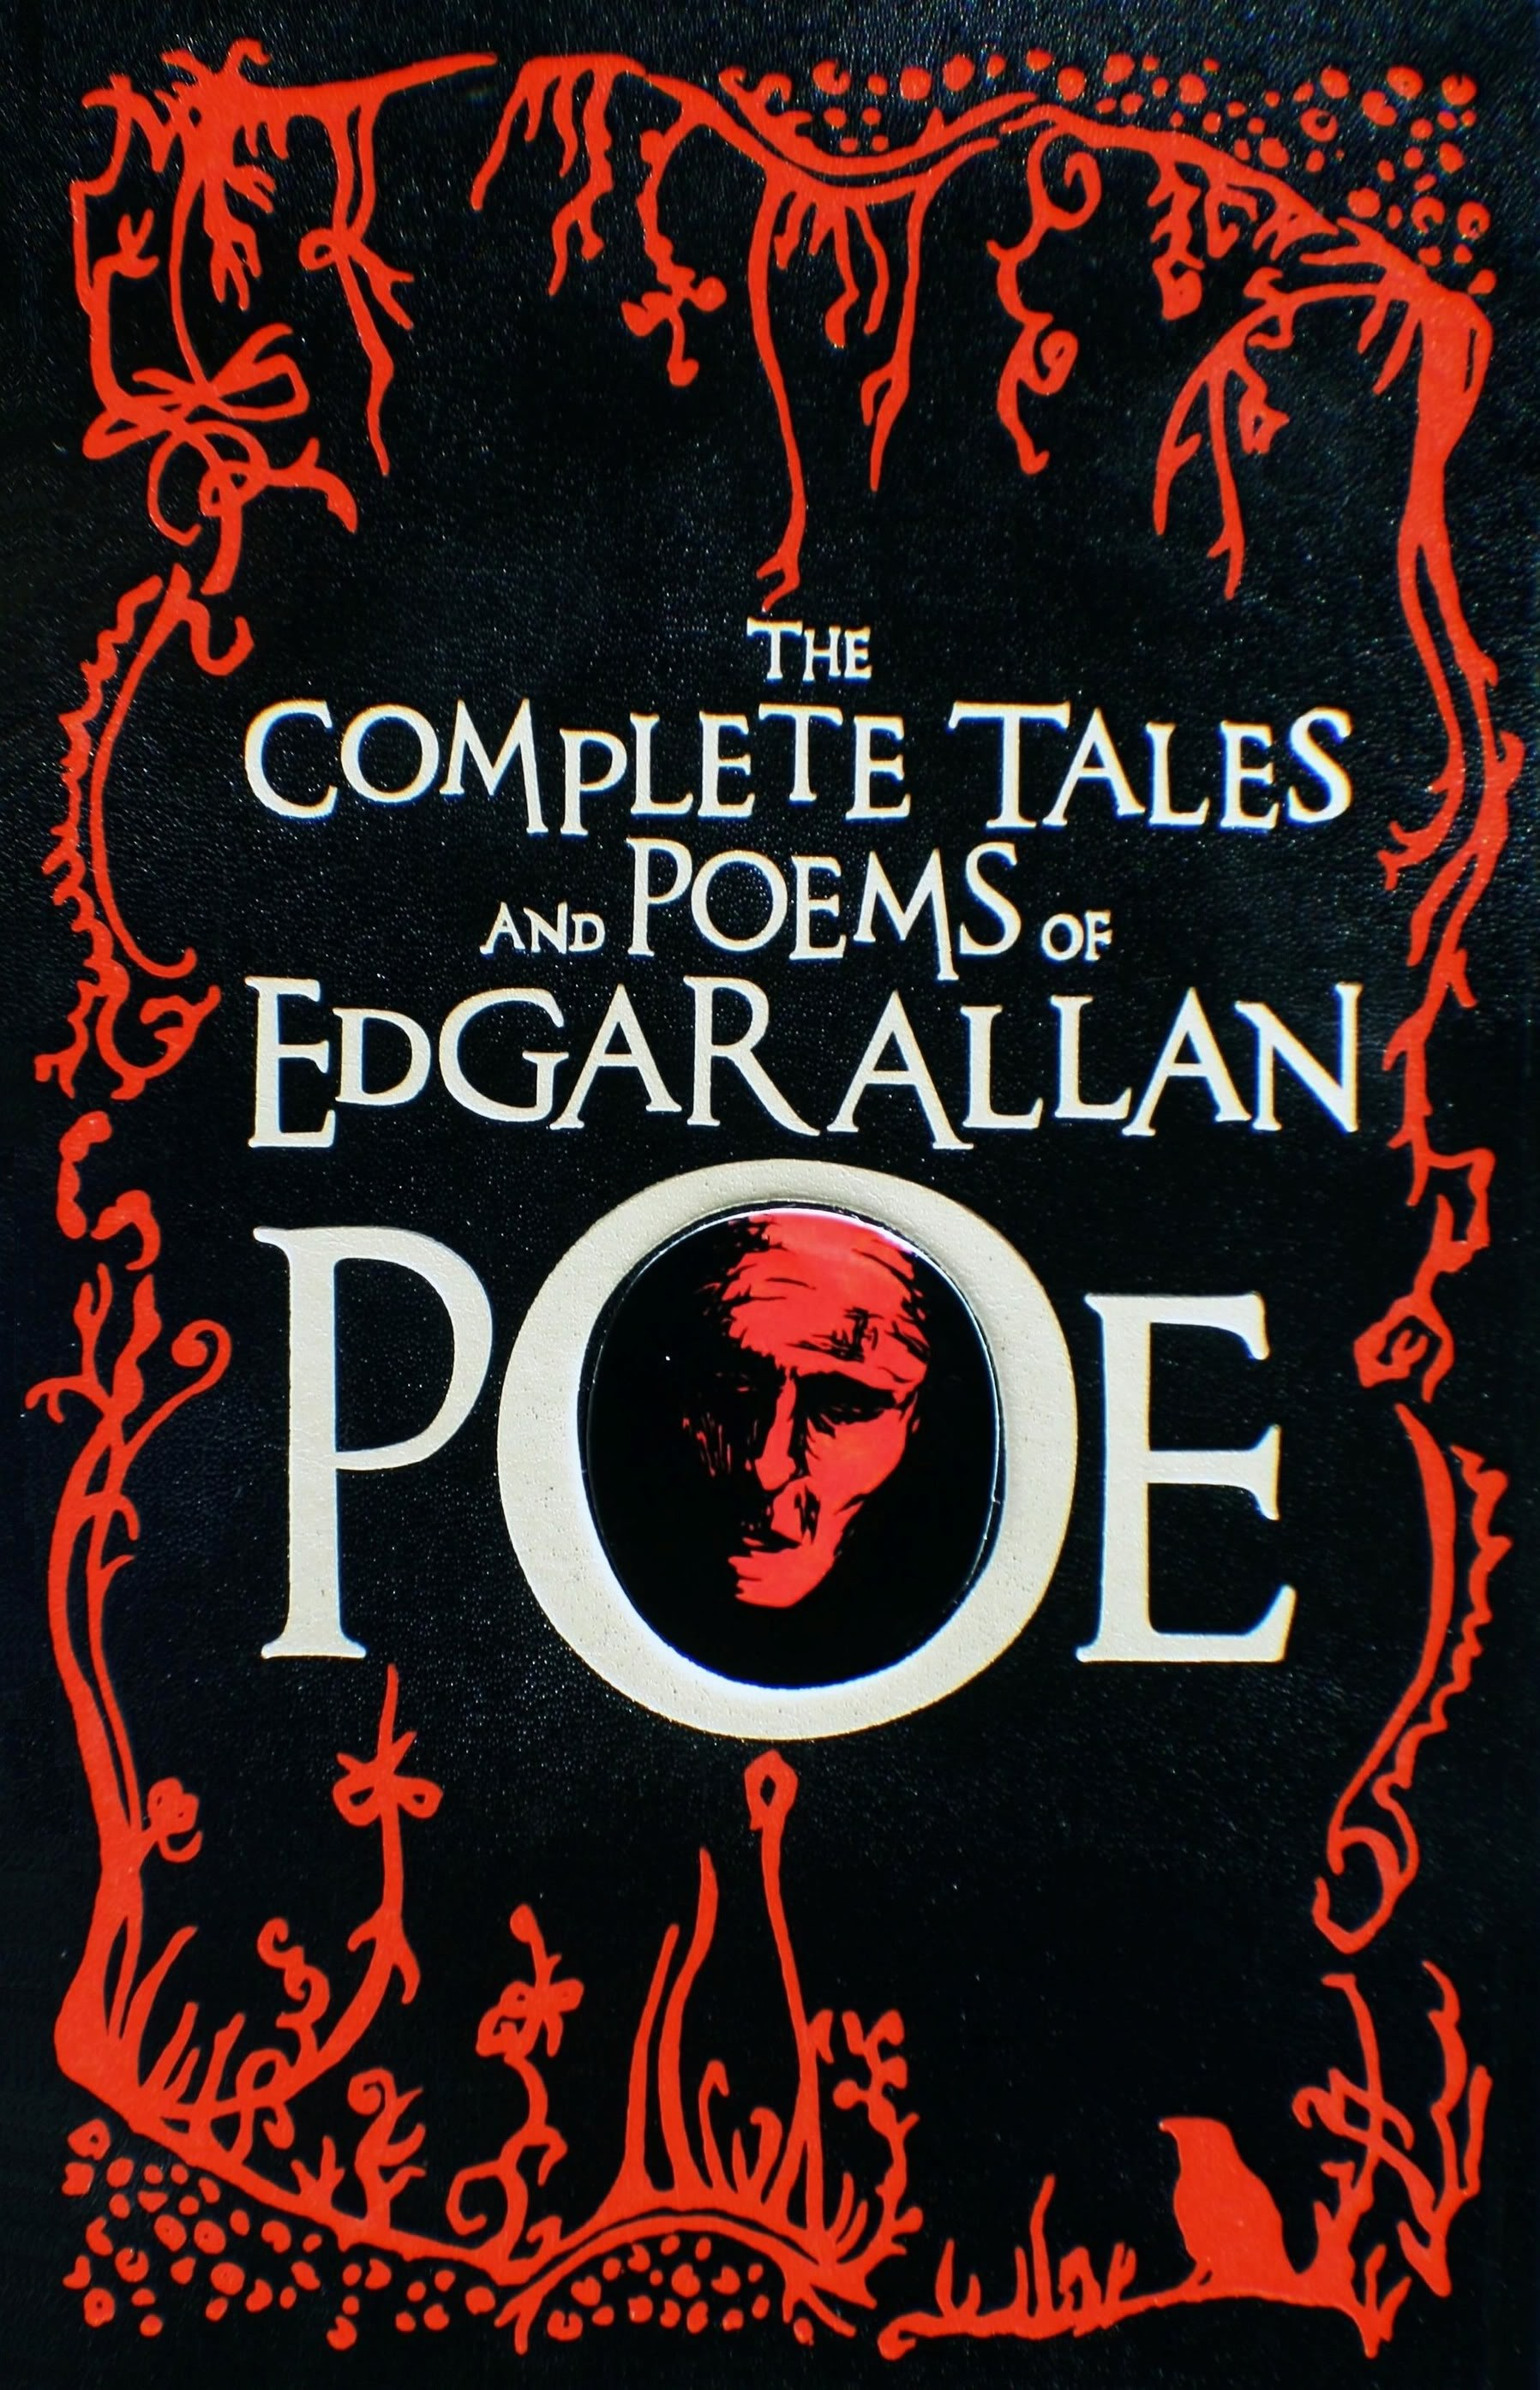 """themes of horror death and mystery in poetry and literature was first used by edgar allan poe He is called """"the father of horror and mystery short stories and poems edgar allan poe was allan poe's life created his literature death and all."""